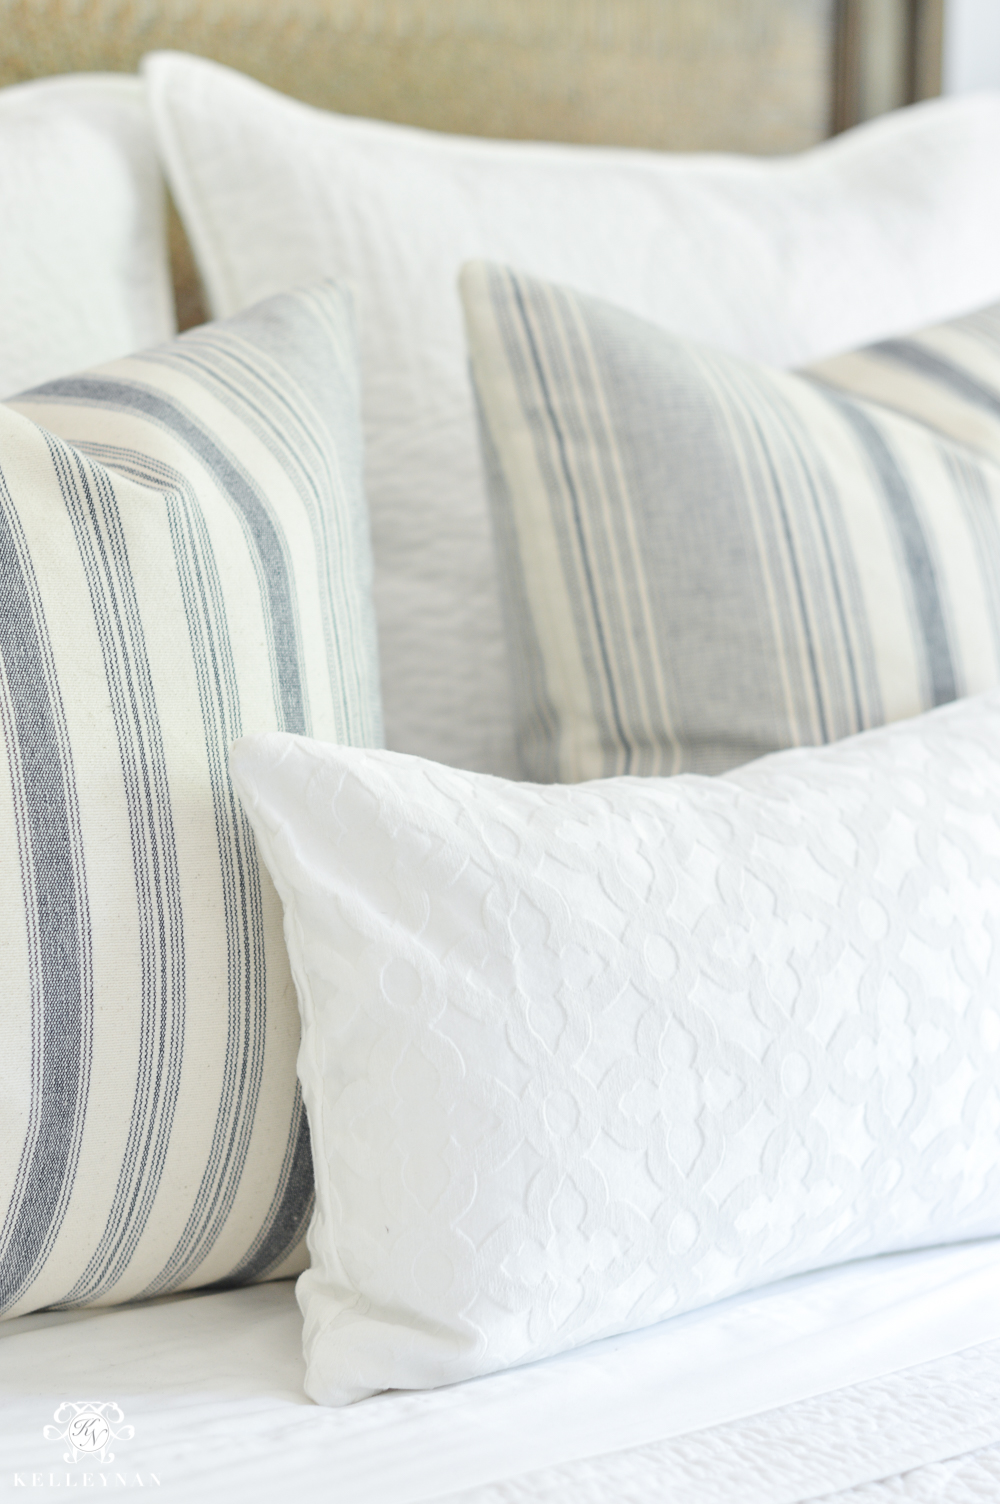 One Room Challenge Blue and White Guest Bedroom Reveal Before and After Makeover- queen bed pillow arrangement